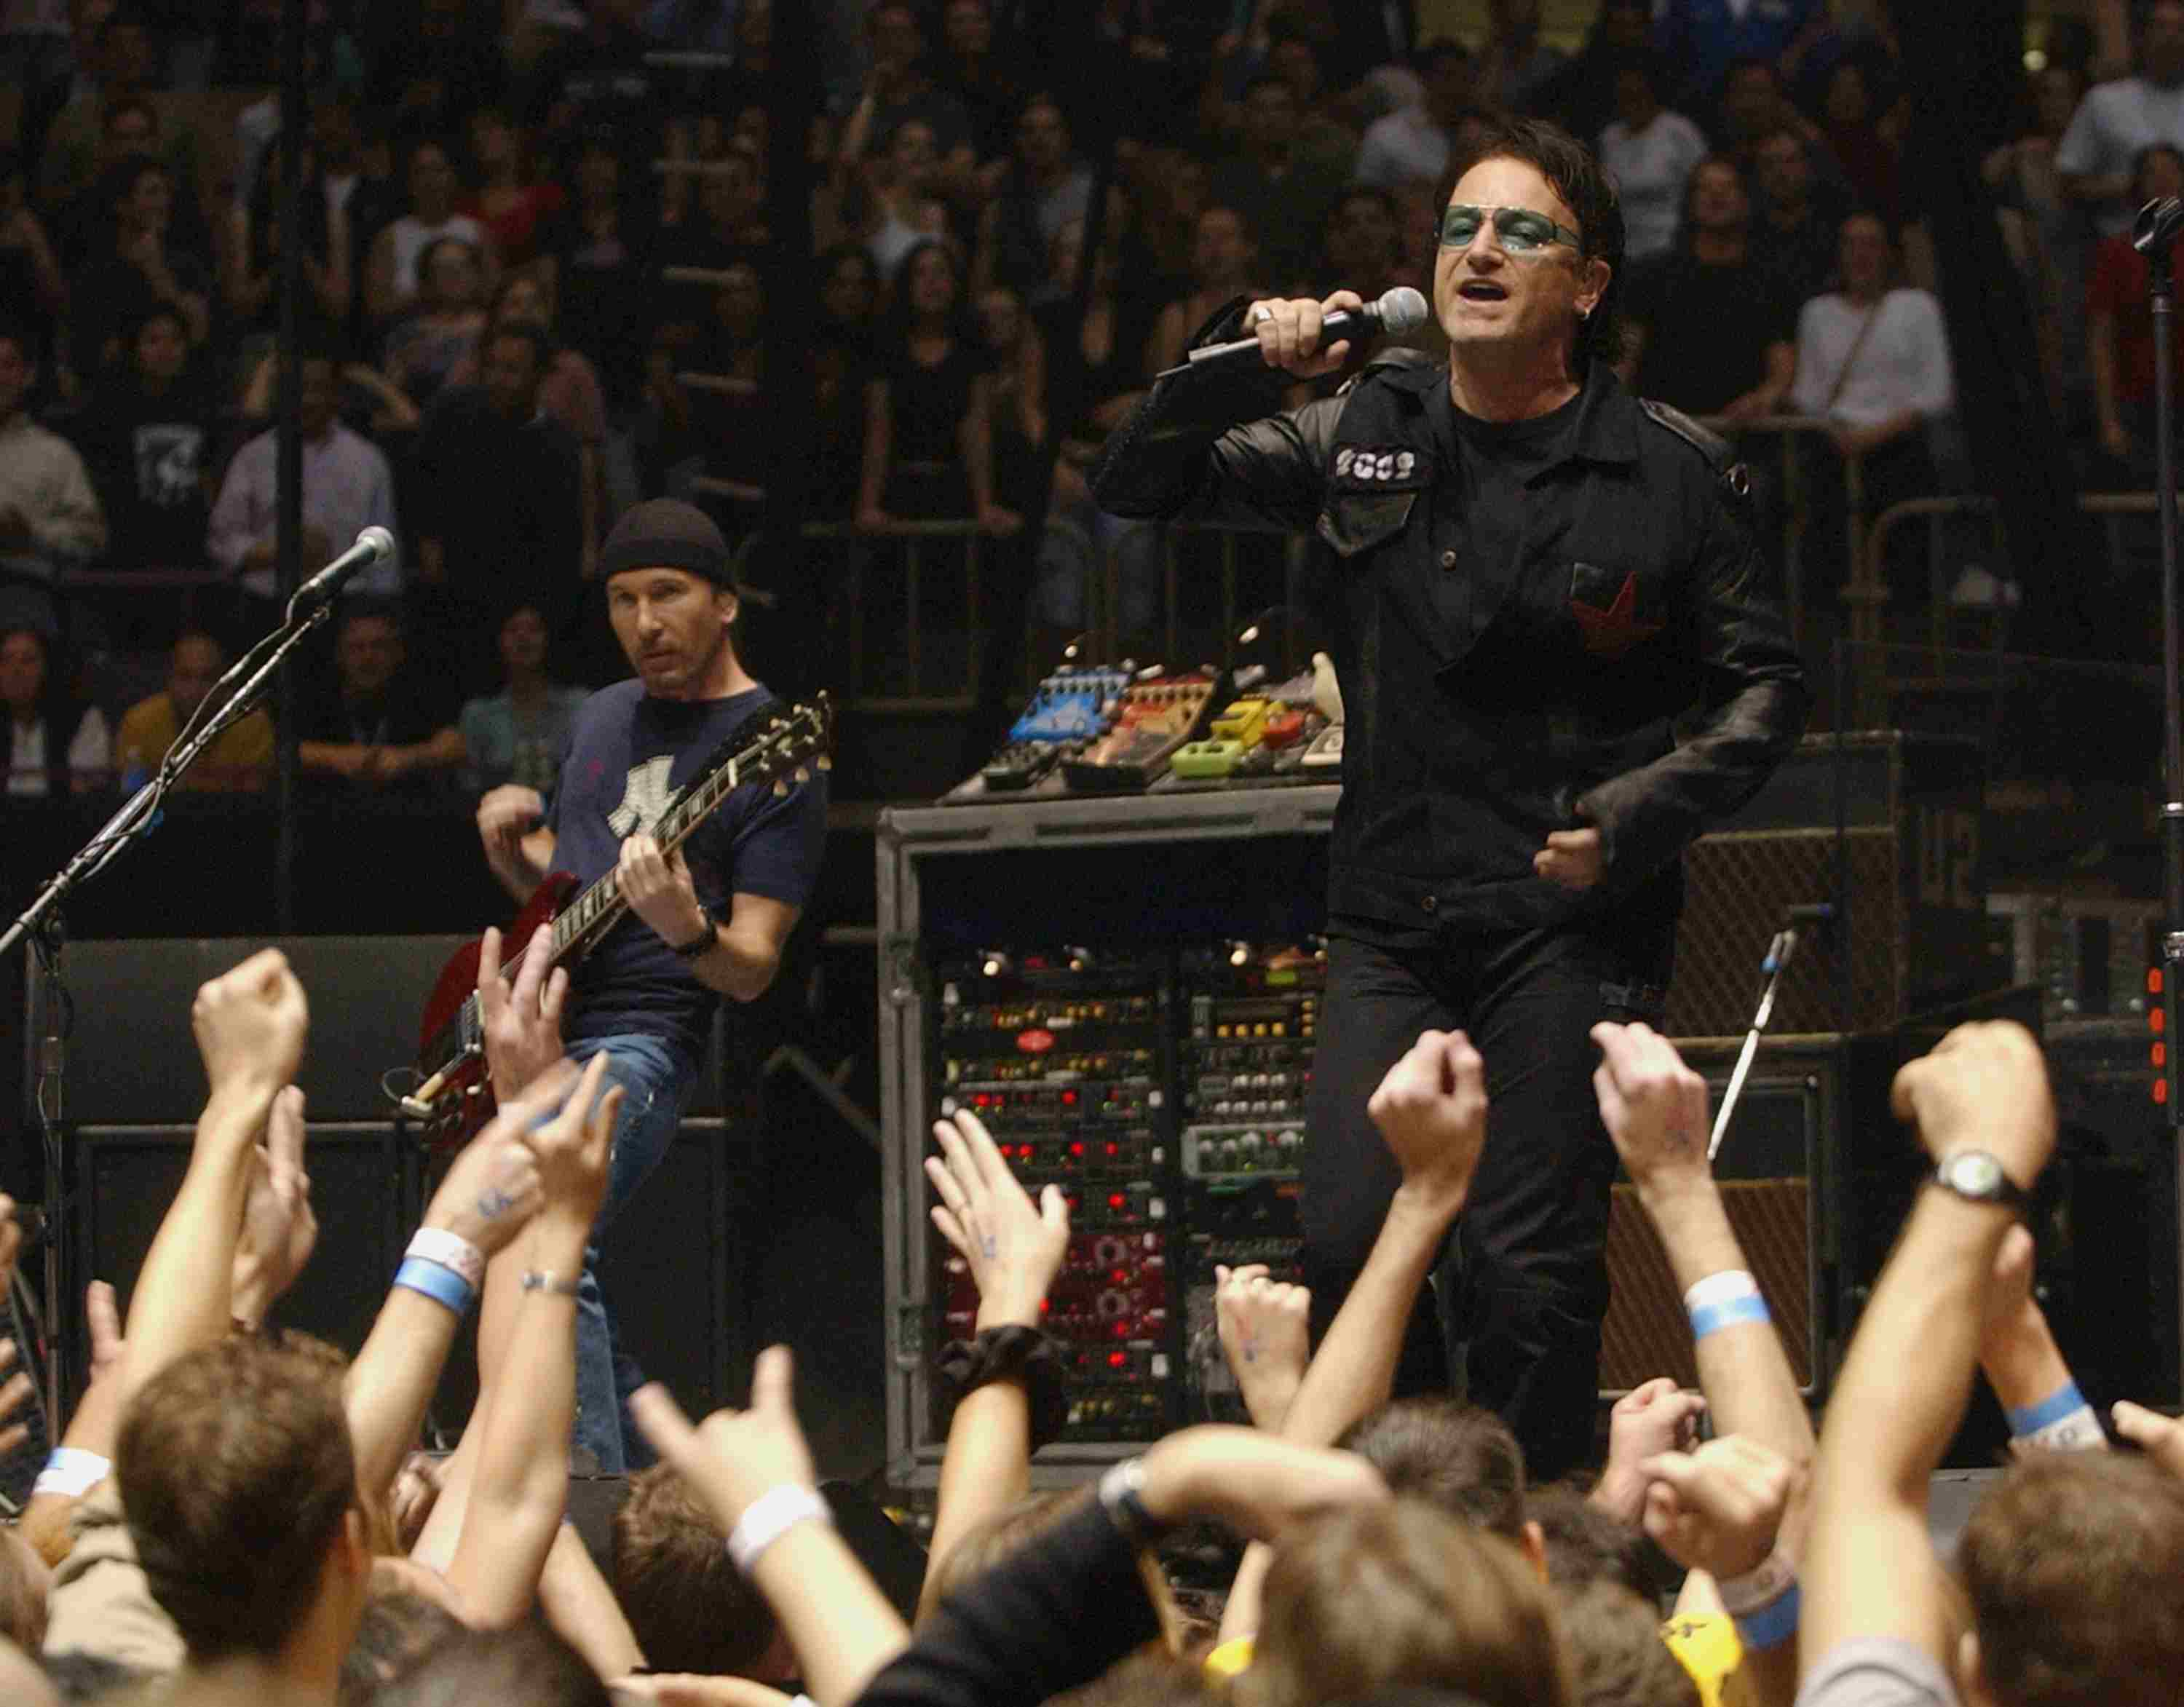 U2 performs at Madison Square Garden in NYC